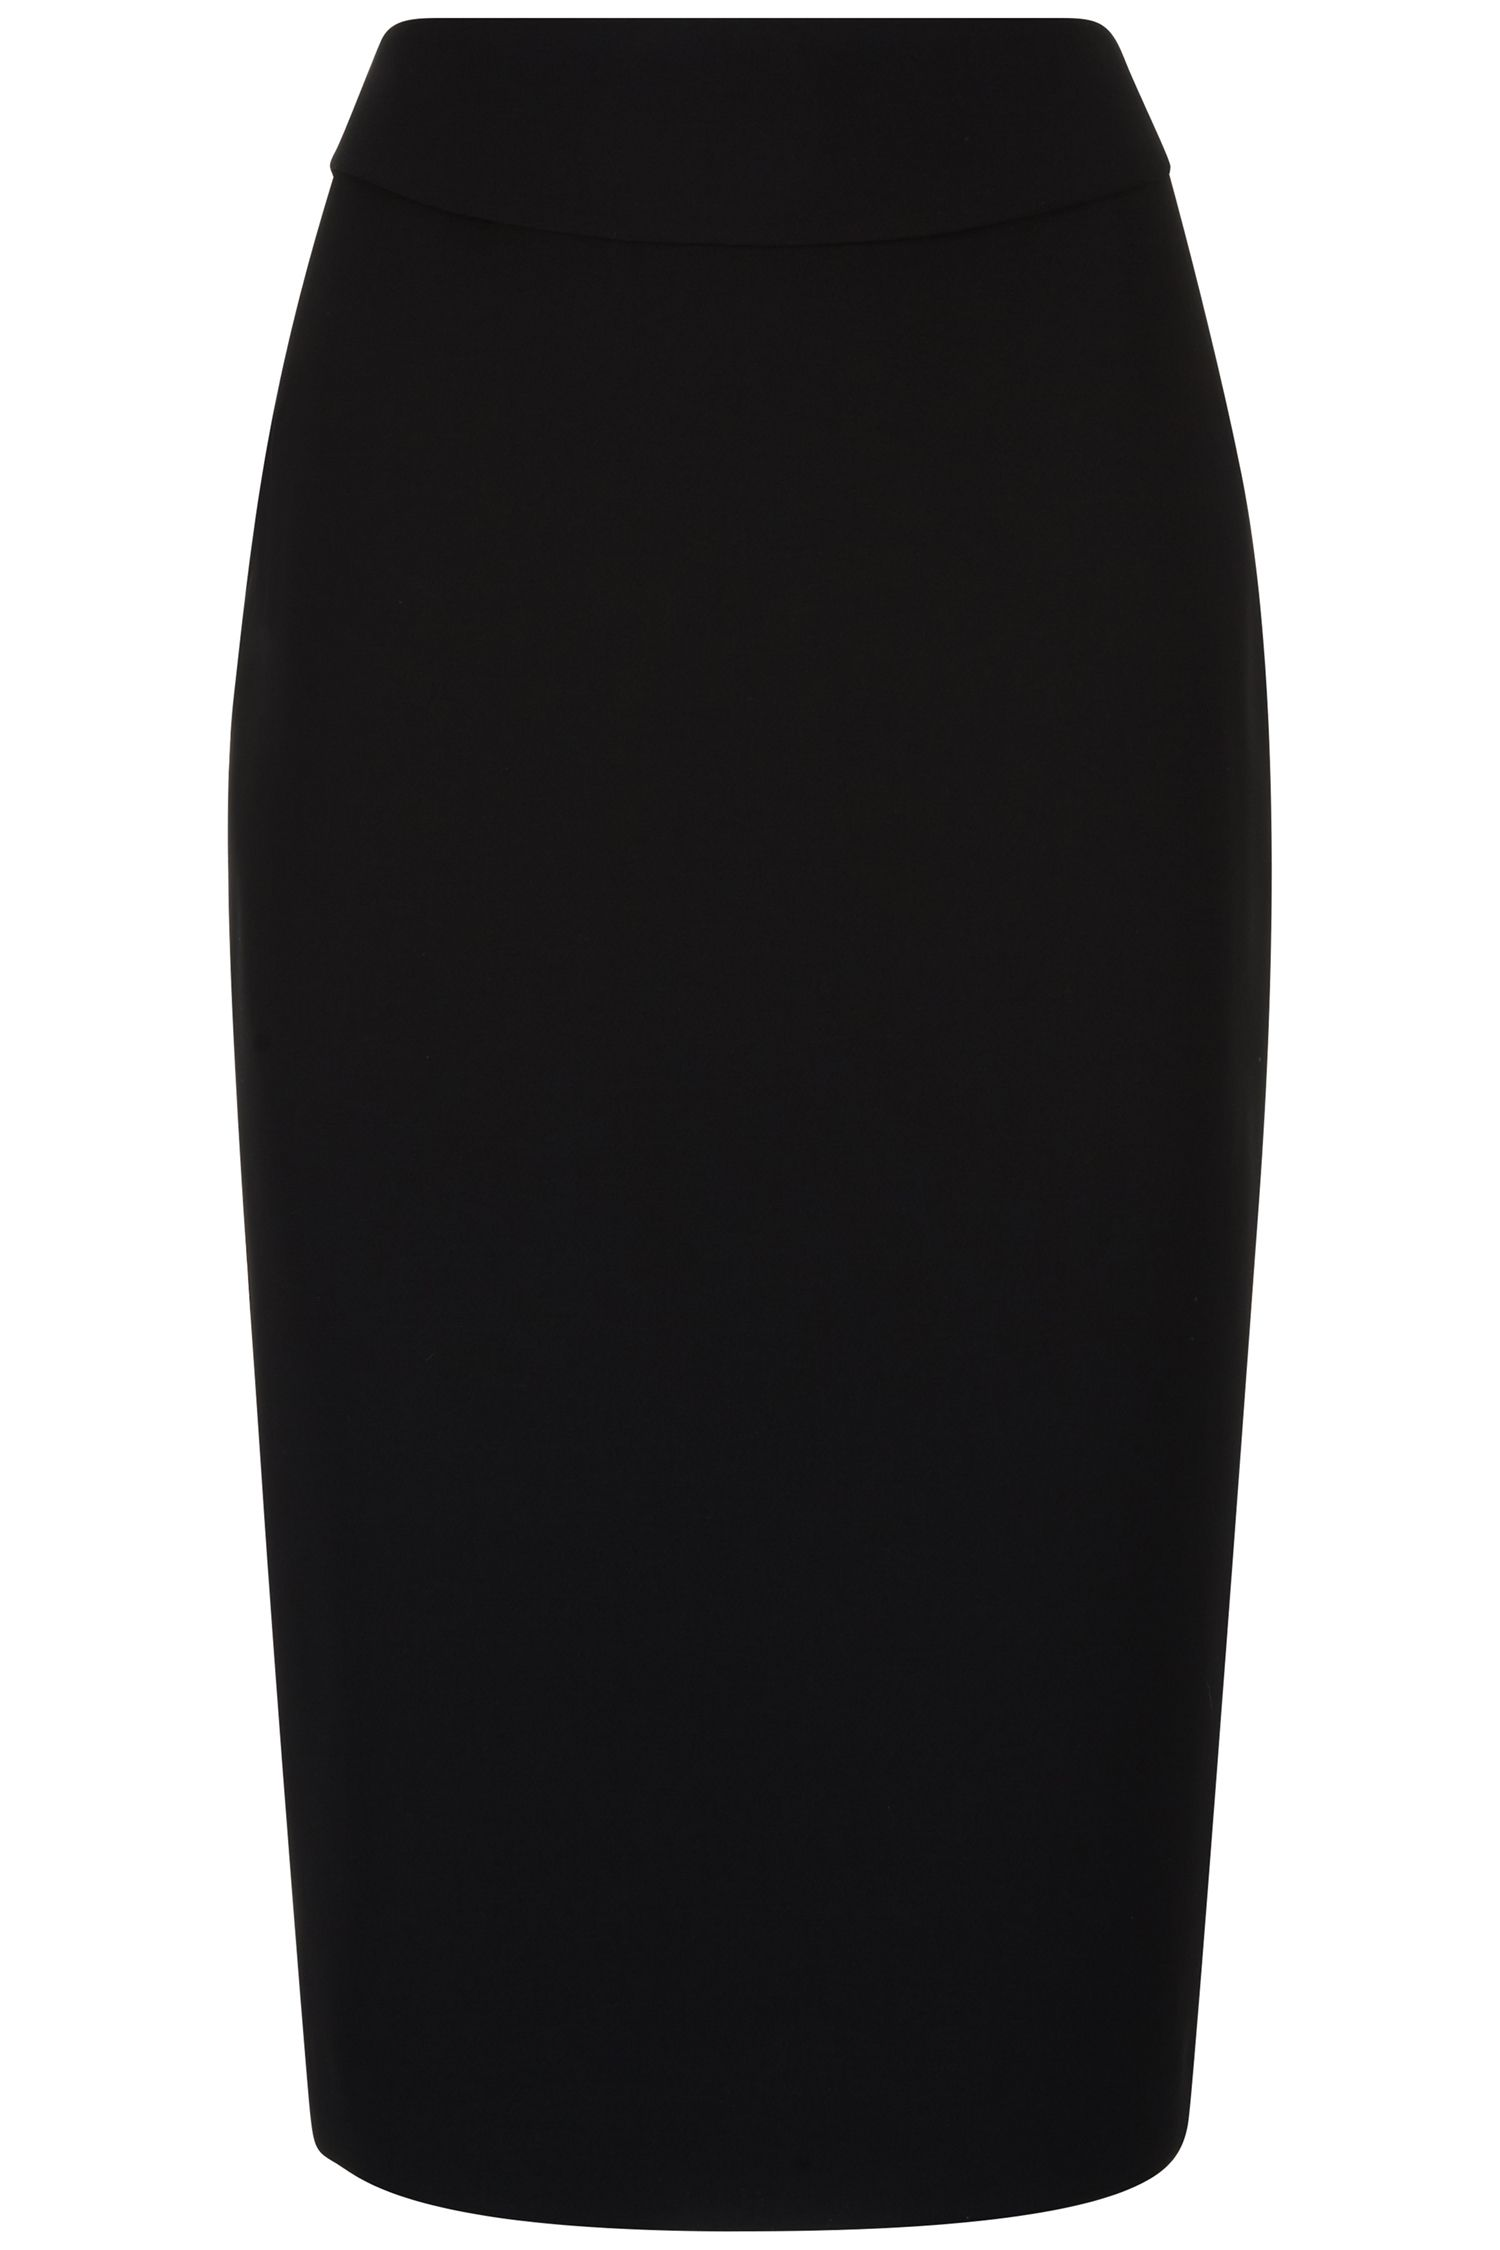 Damsel in a Dress Spotlight Skirt, Black